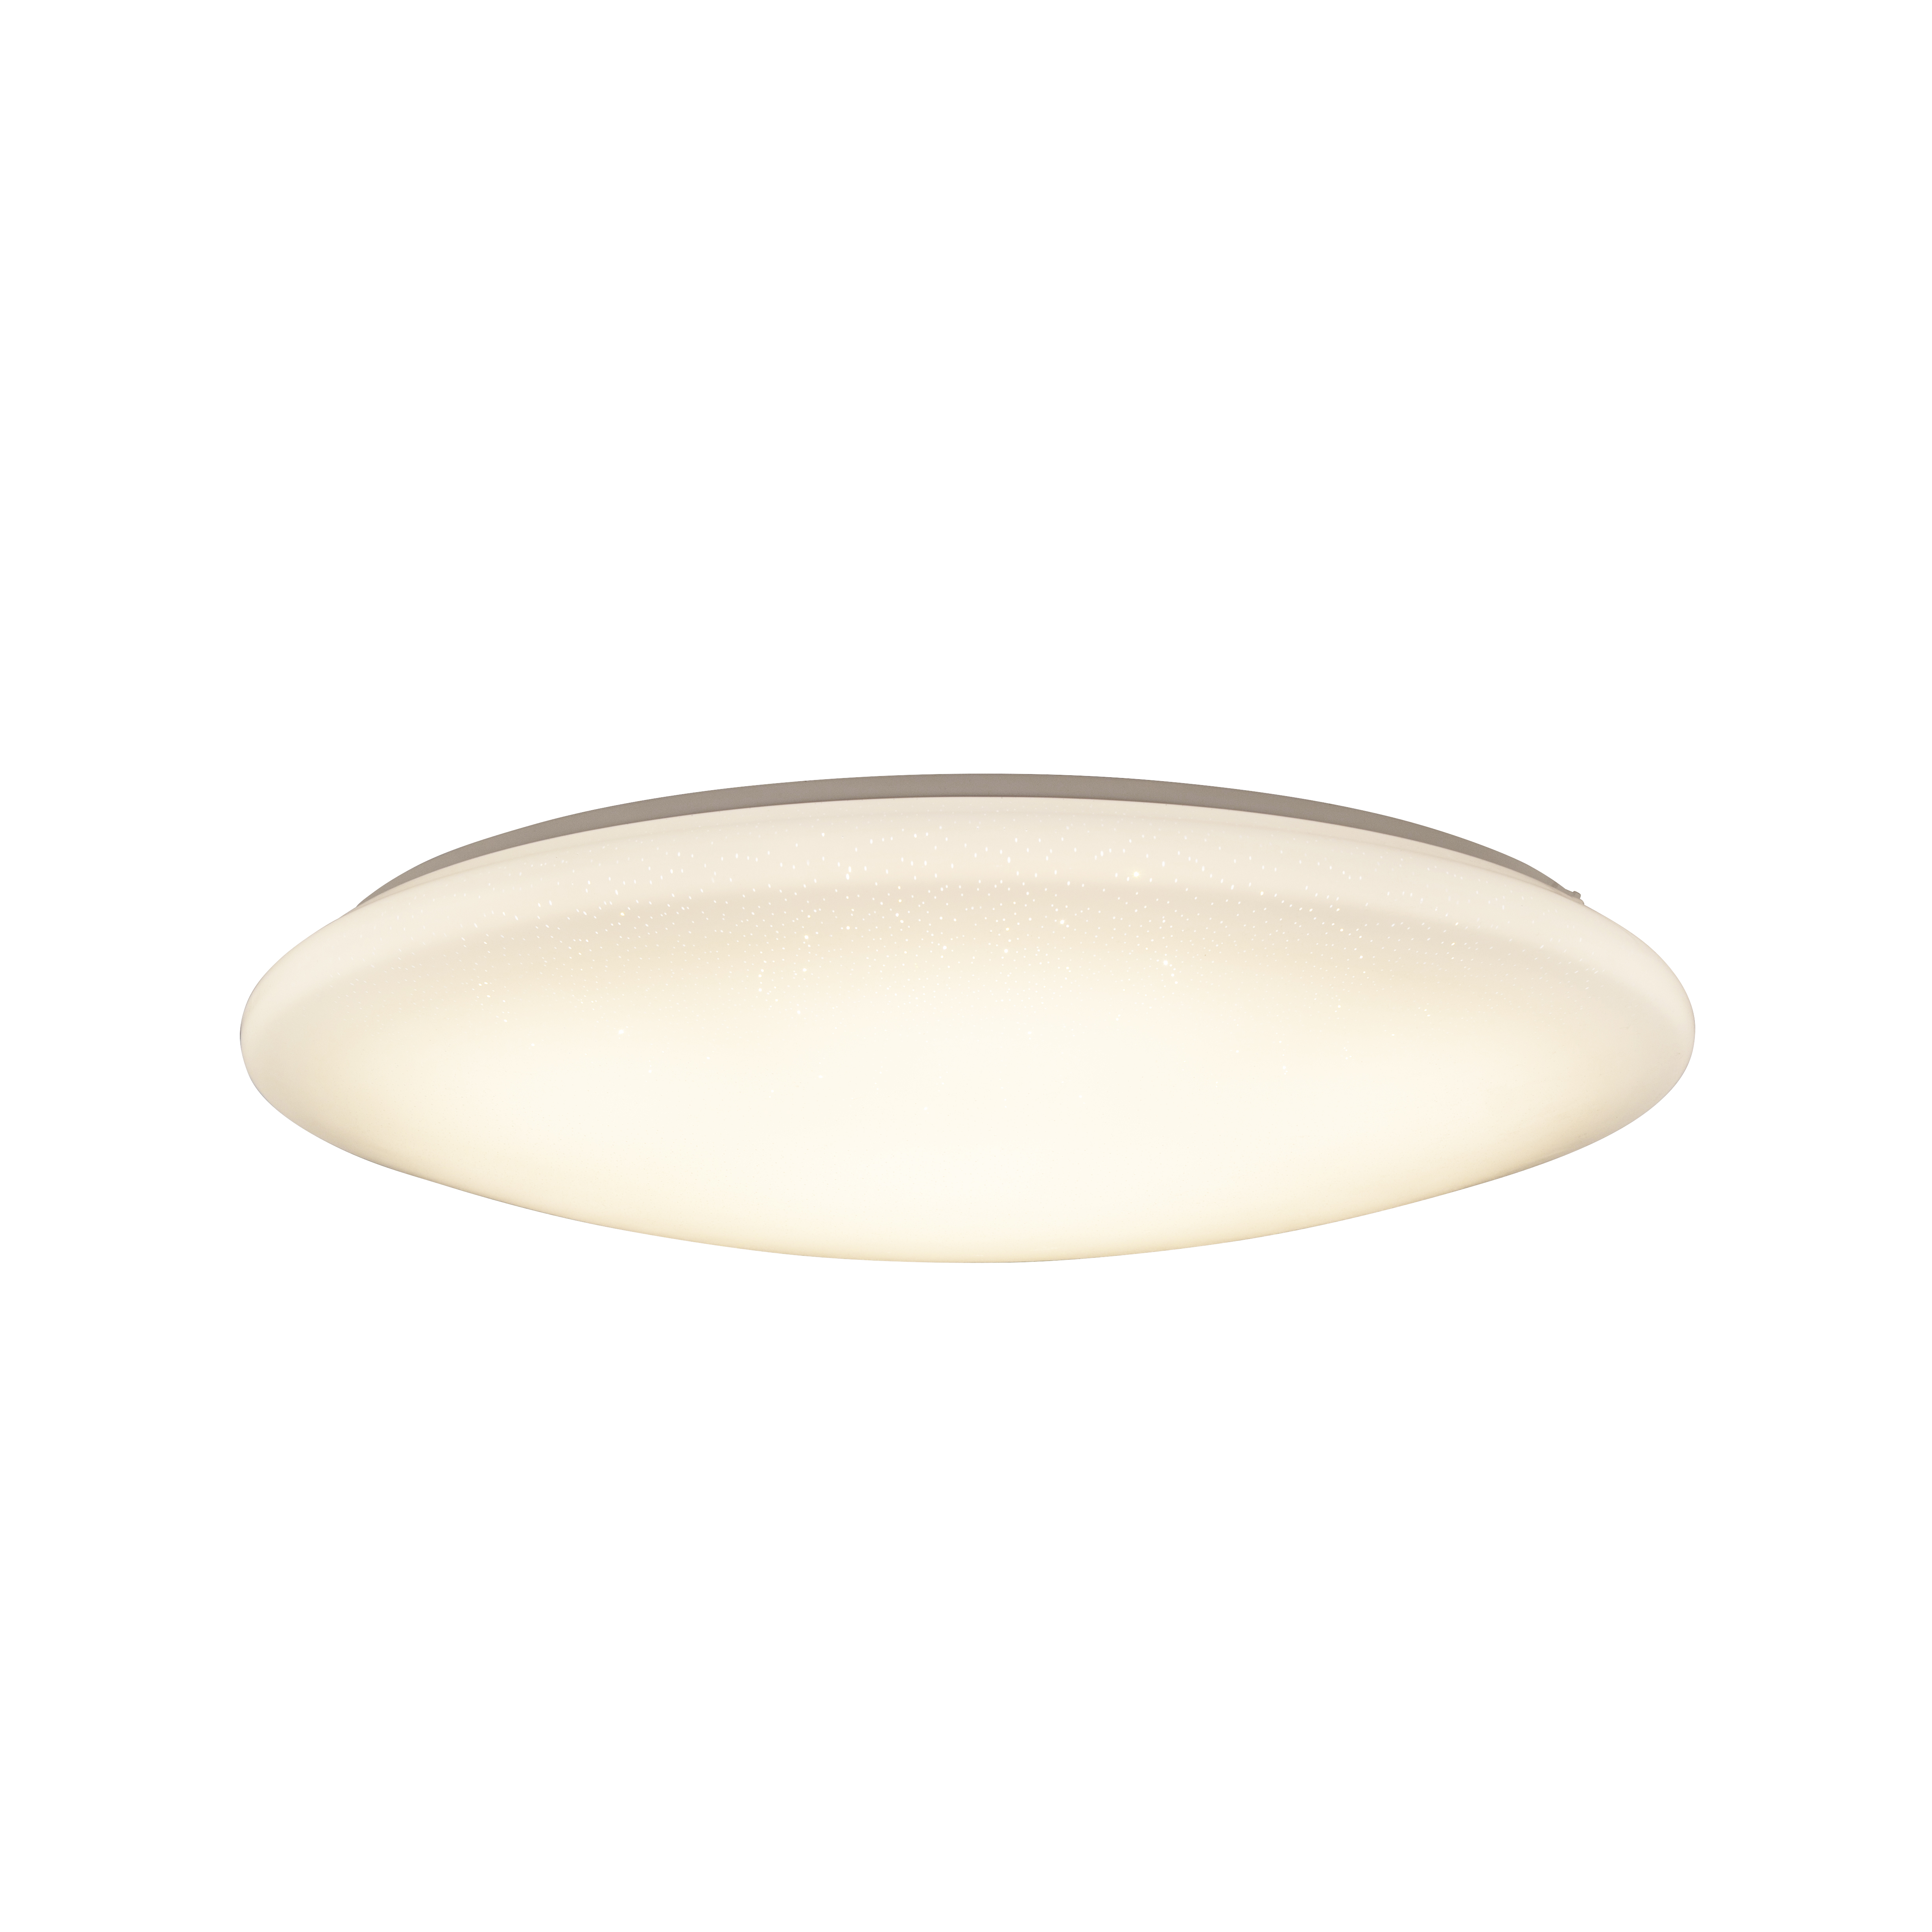 Led Plafondlamp 80cm Stereffect Met Afstandsbediening - Extrema